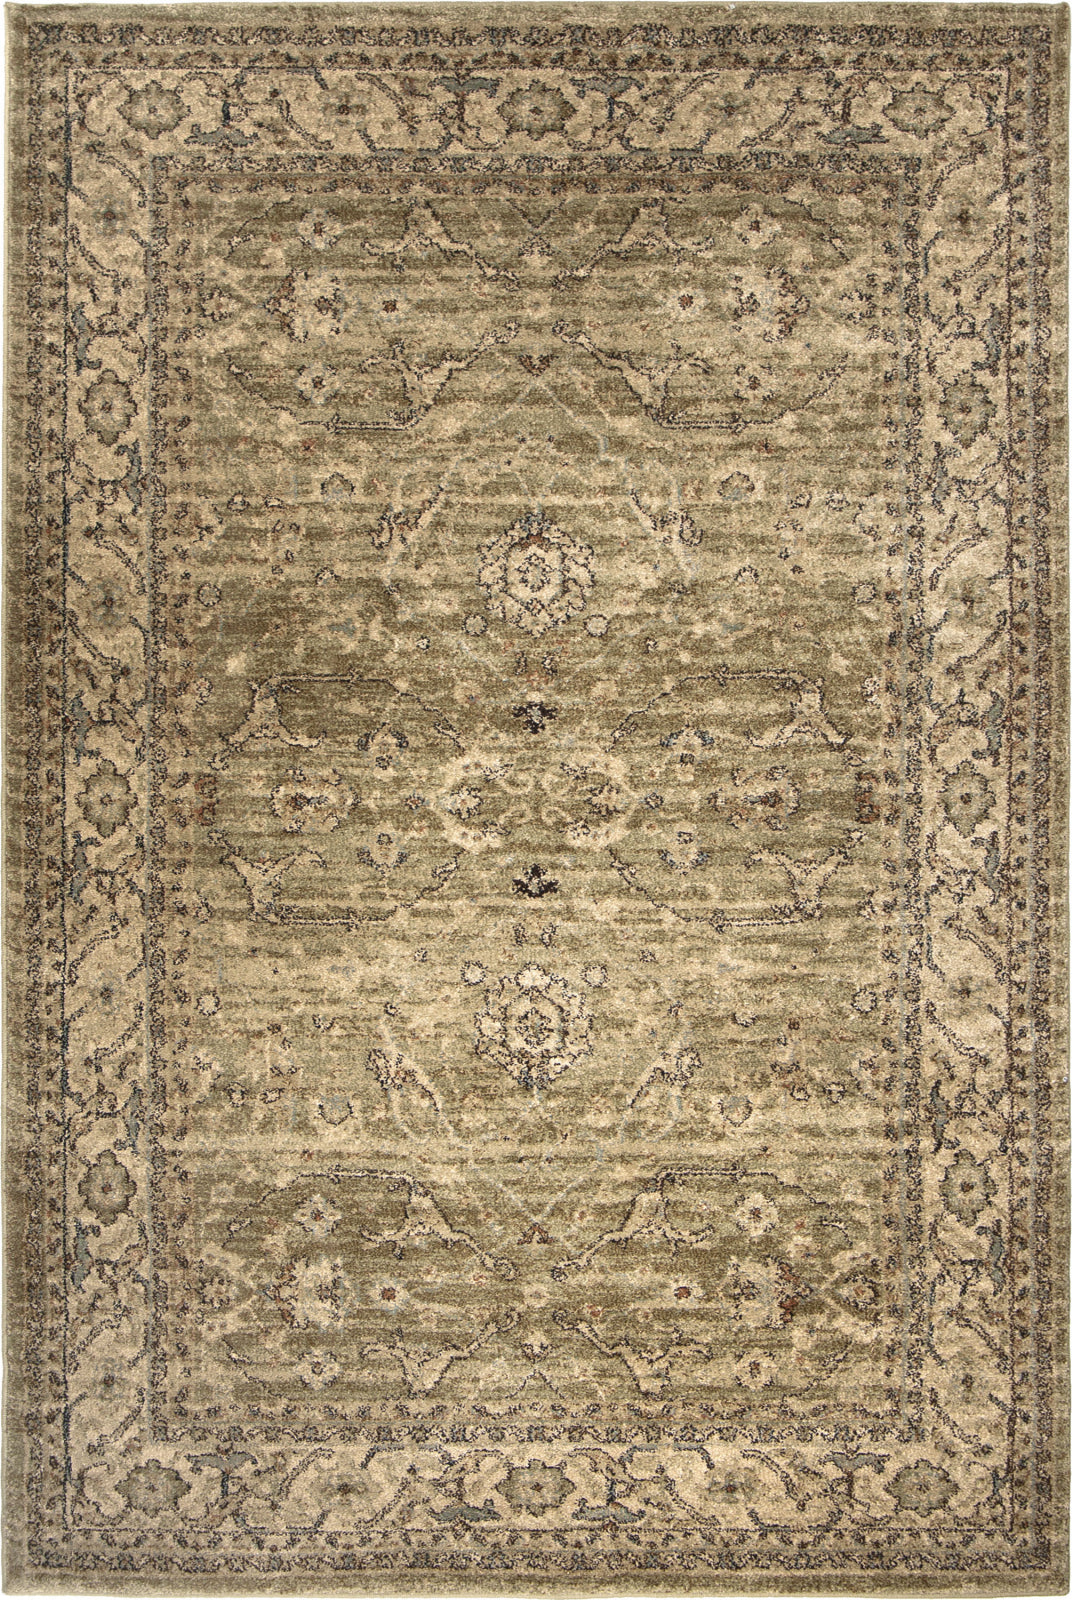 Orian Rugs Aria Ansley Green Area Rug by Palmetto Living main image